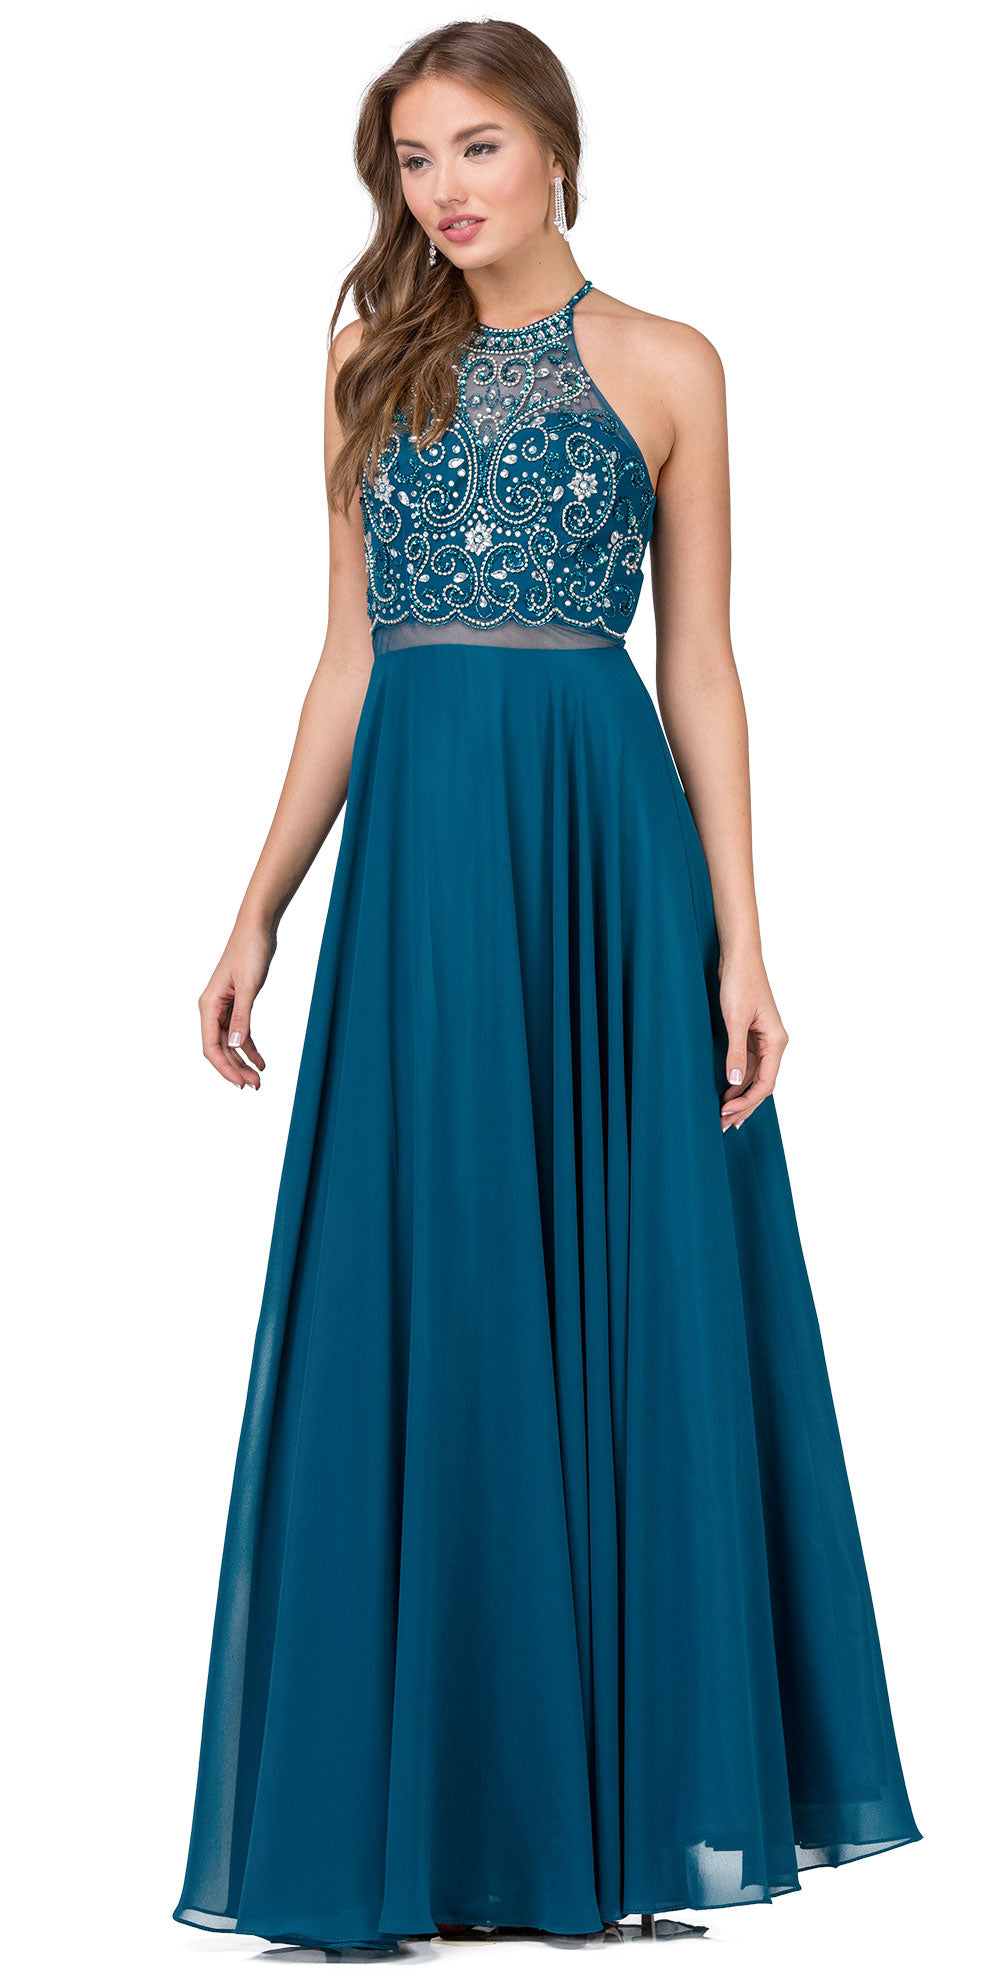 Image of A-line Rhinestones Bodice Sheer Waist Long Prom Dress in Teal